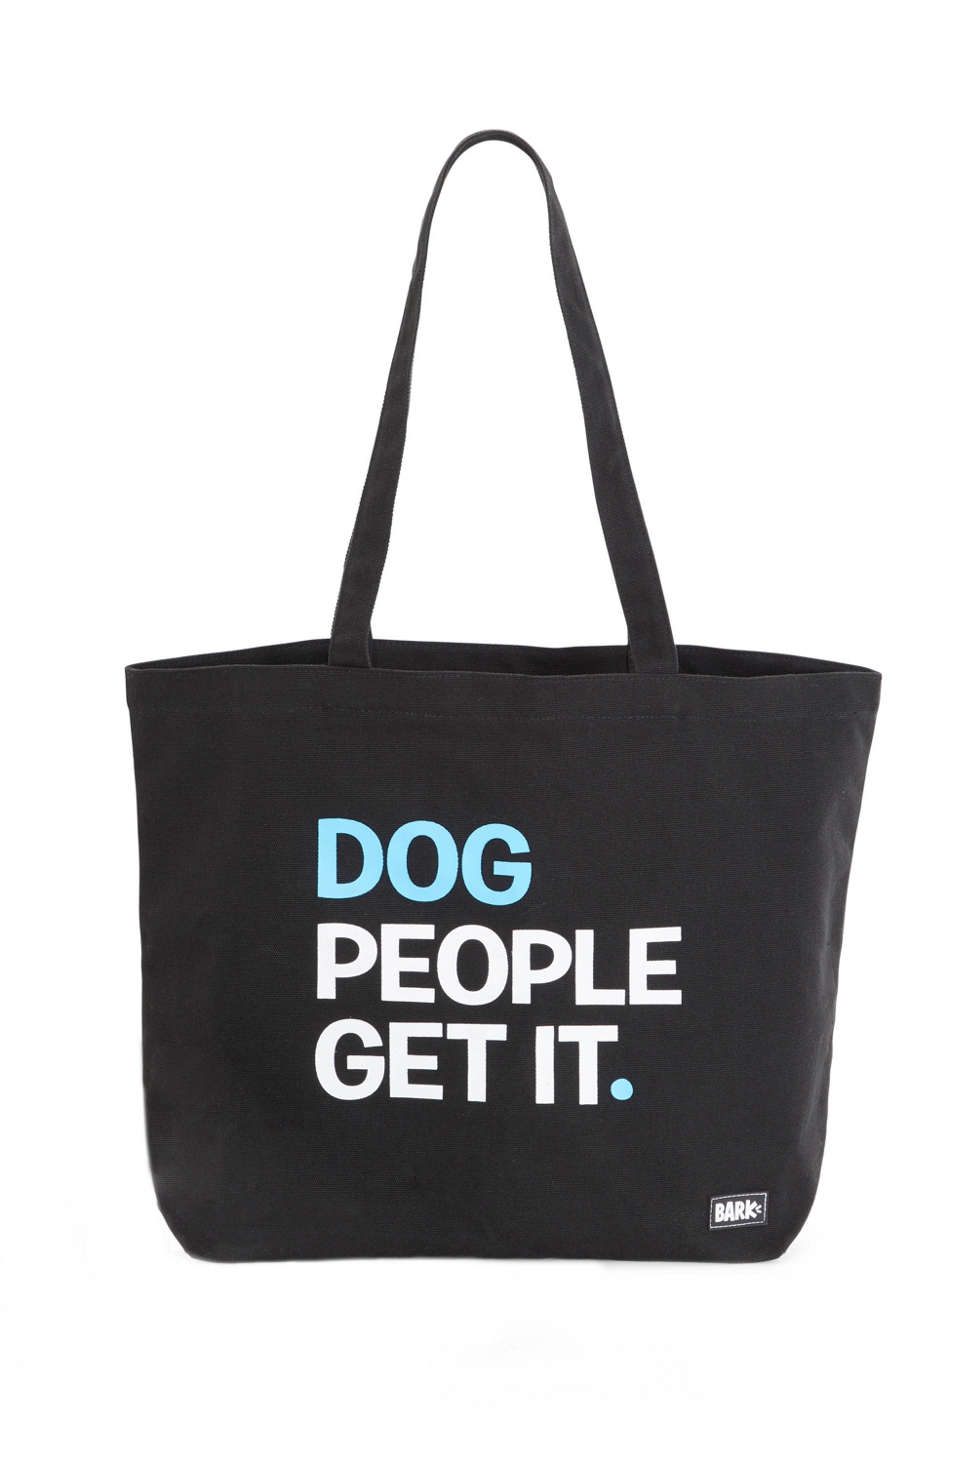 Slide View: 1: BARK Dog People Get It Tote